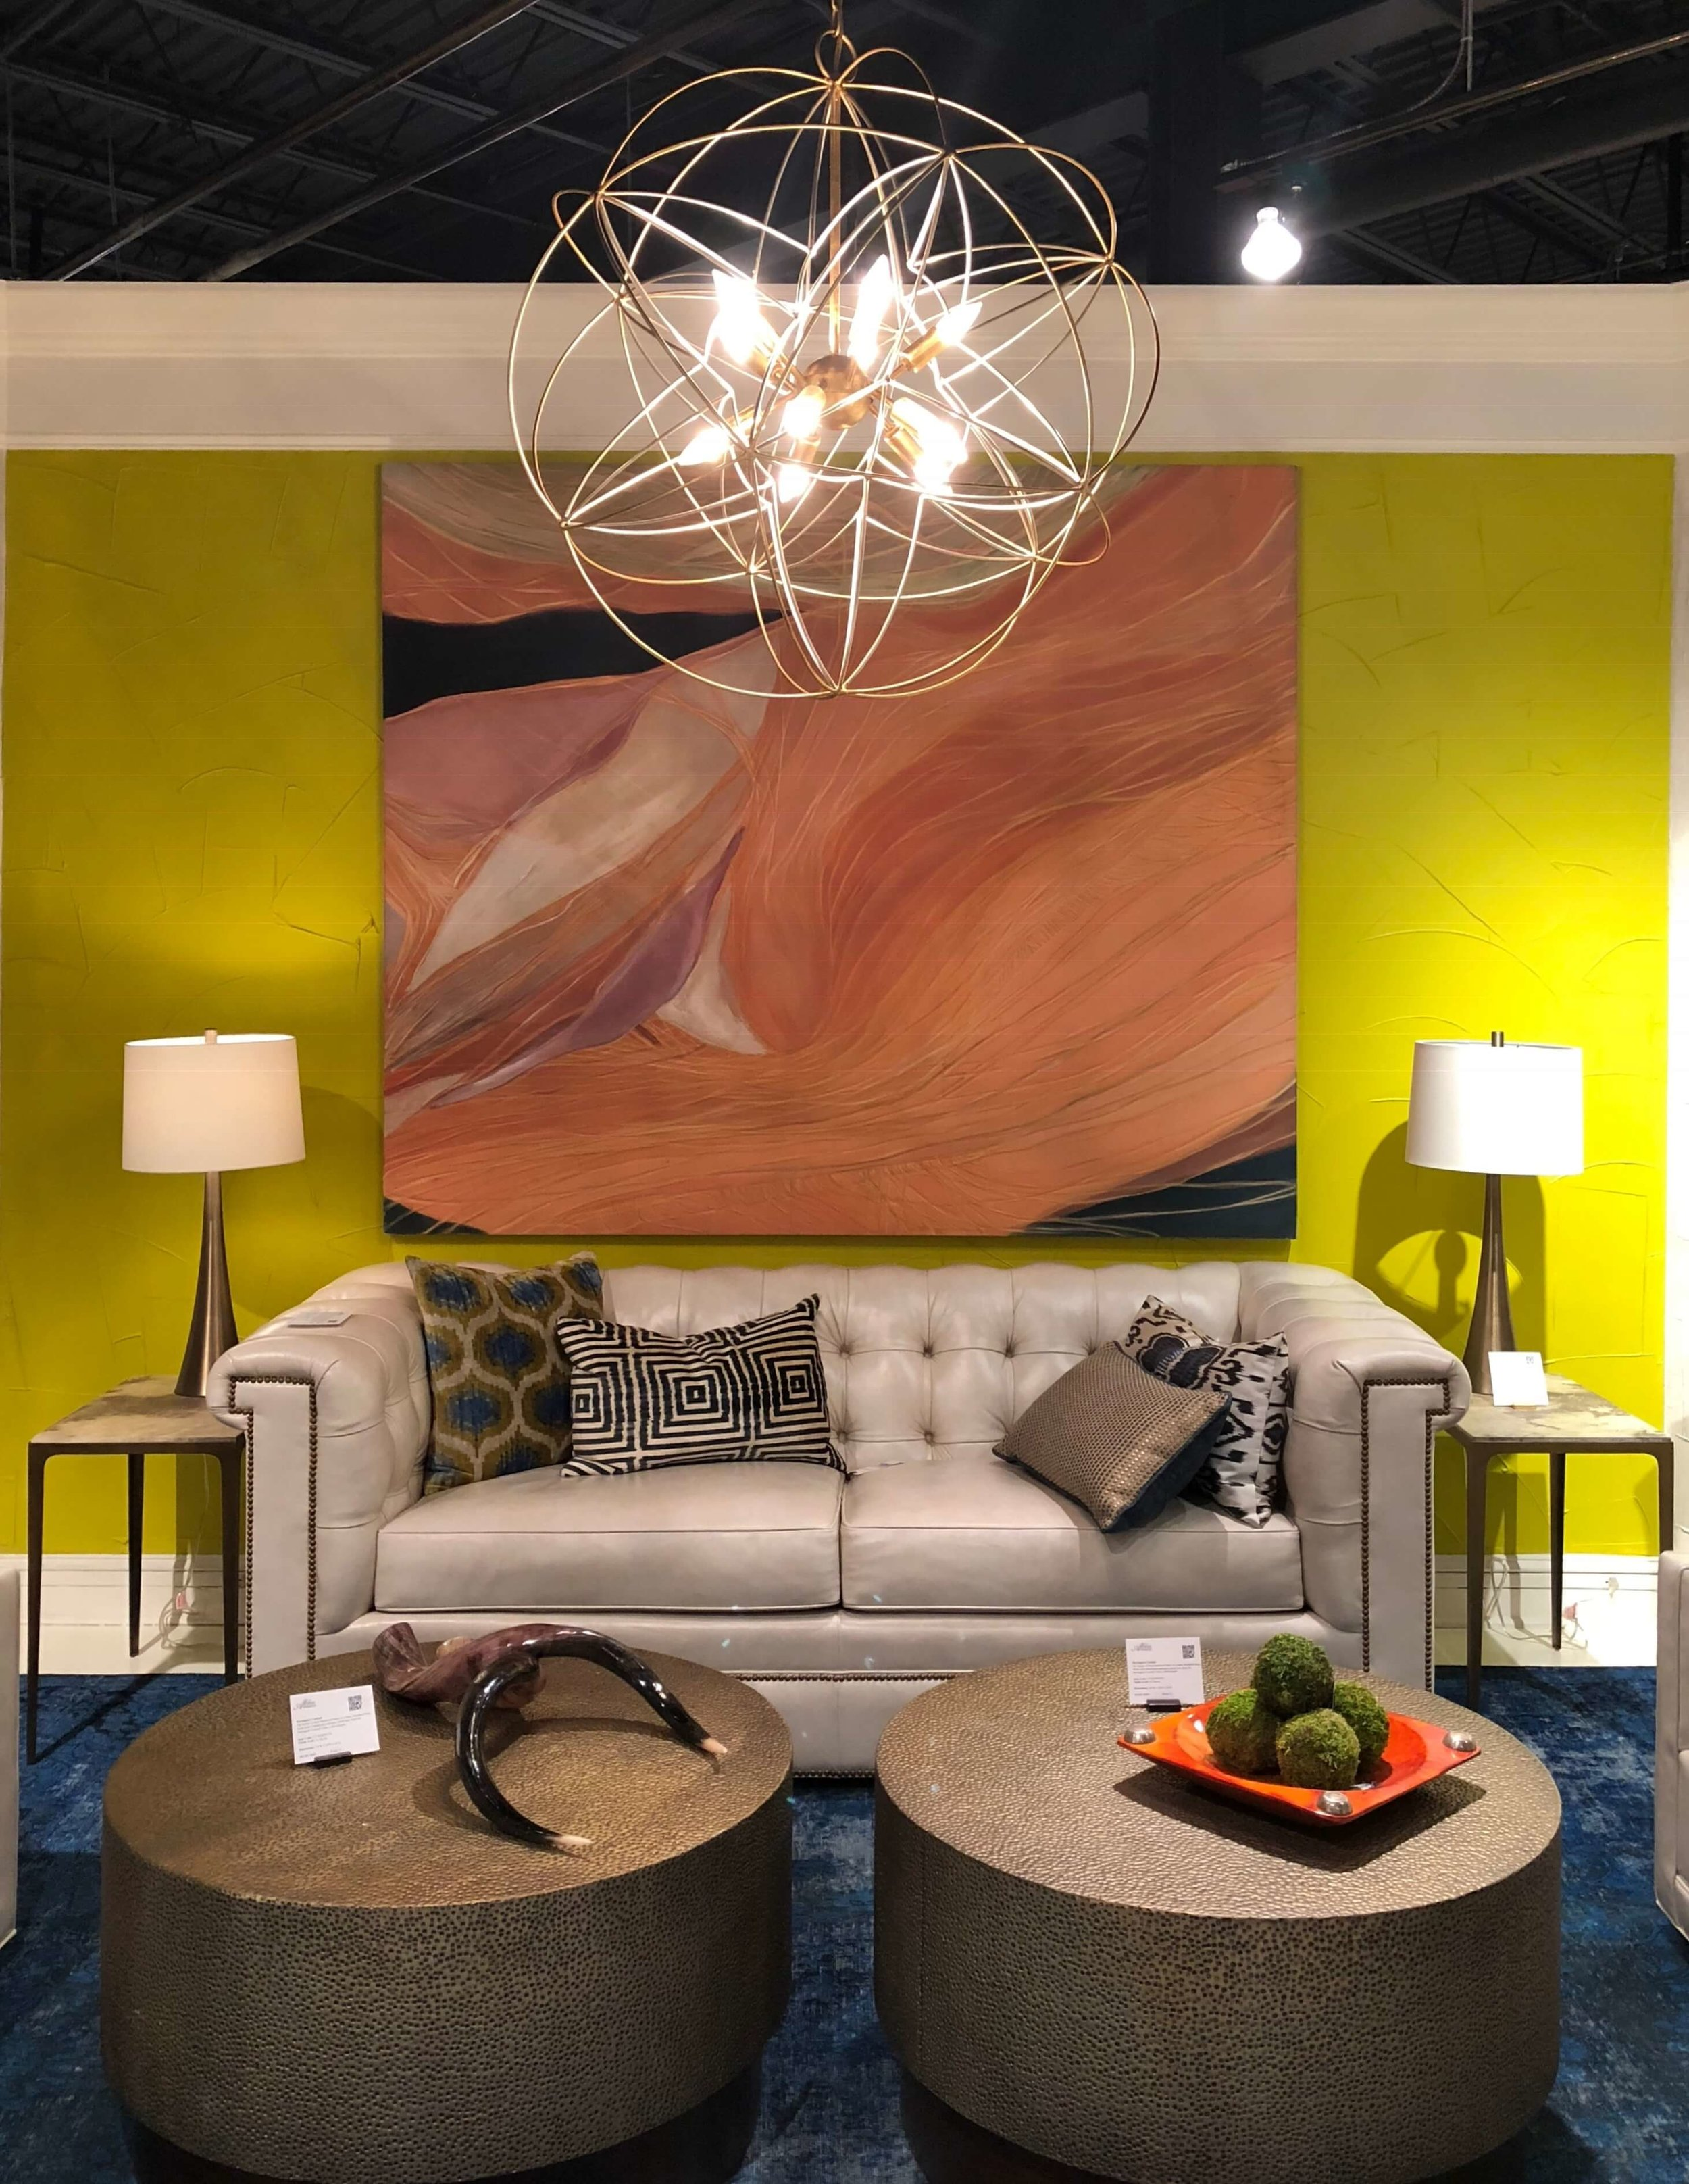 Living room designed by Jeanne Chung of Cozy, Stylish, Chic for Alden Parkes Showroom #hpmkt #yellowwall #livingroomideas #chesterfieldsofa